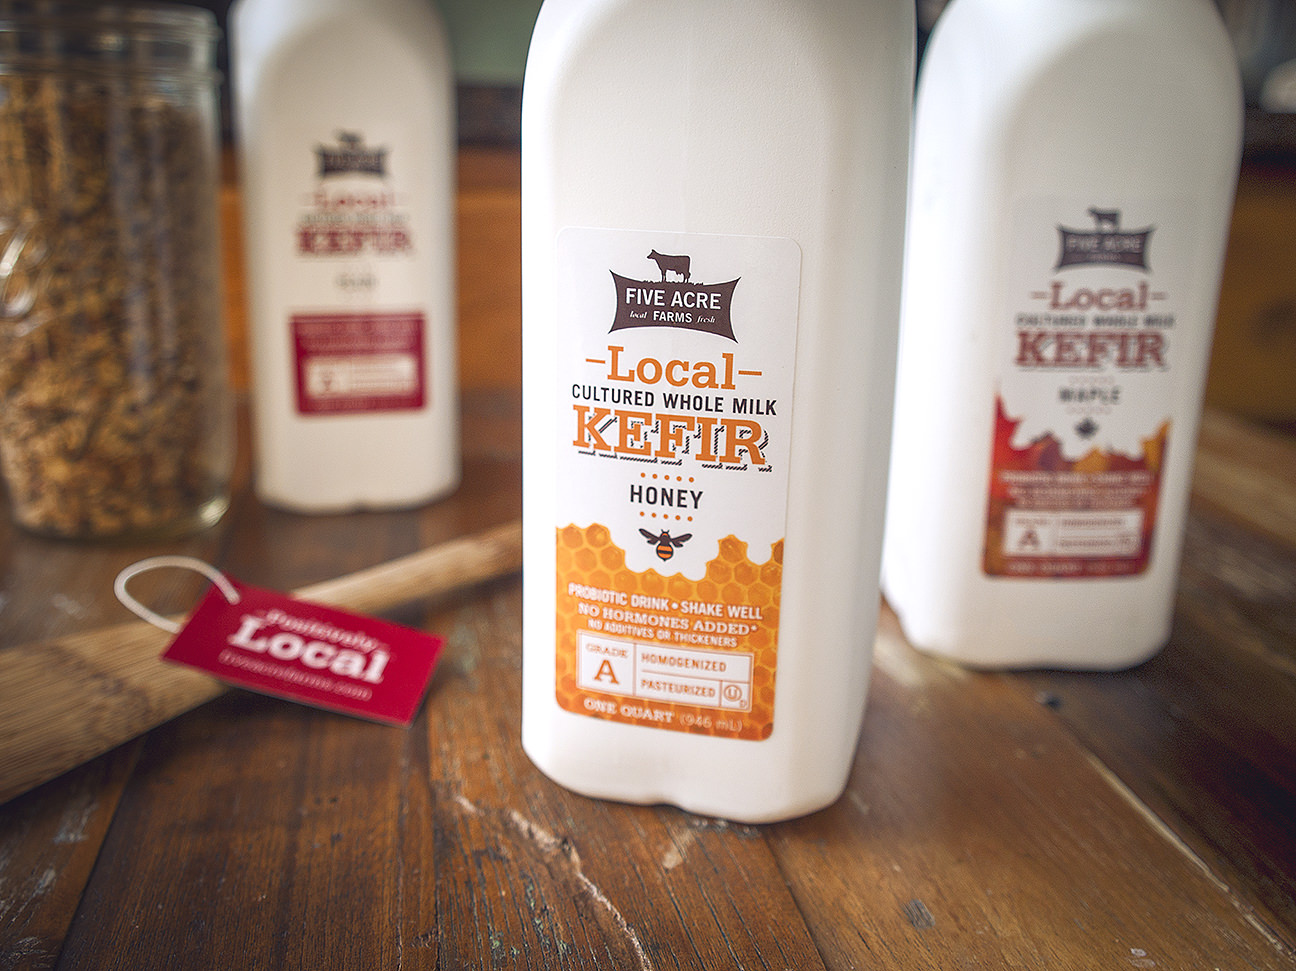 Local Kefir Five Acre Farms